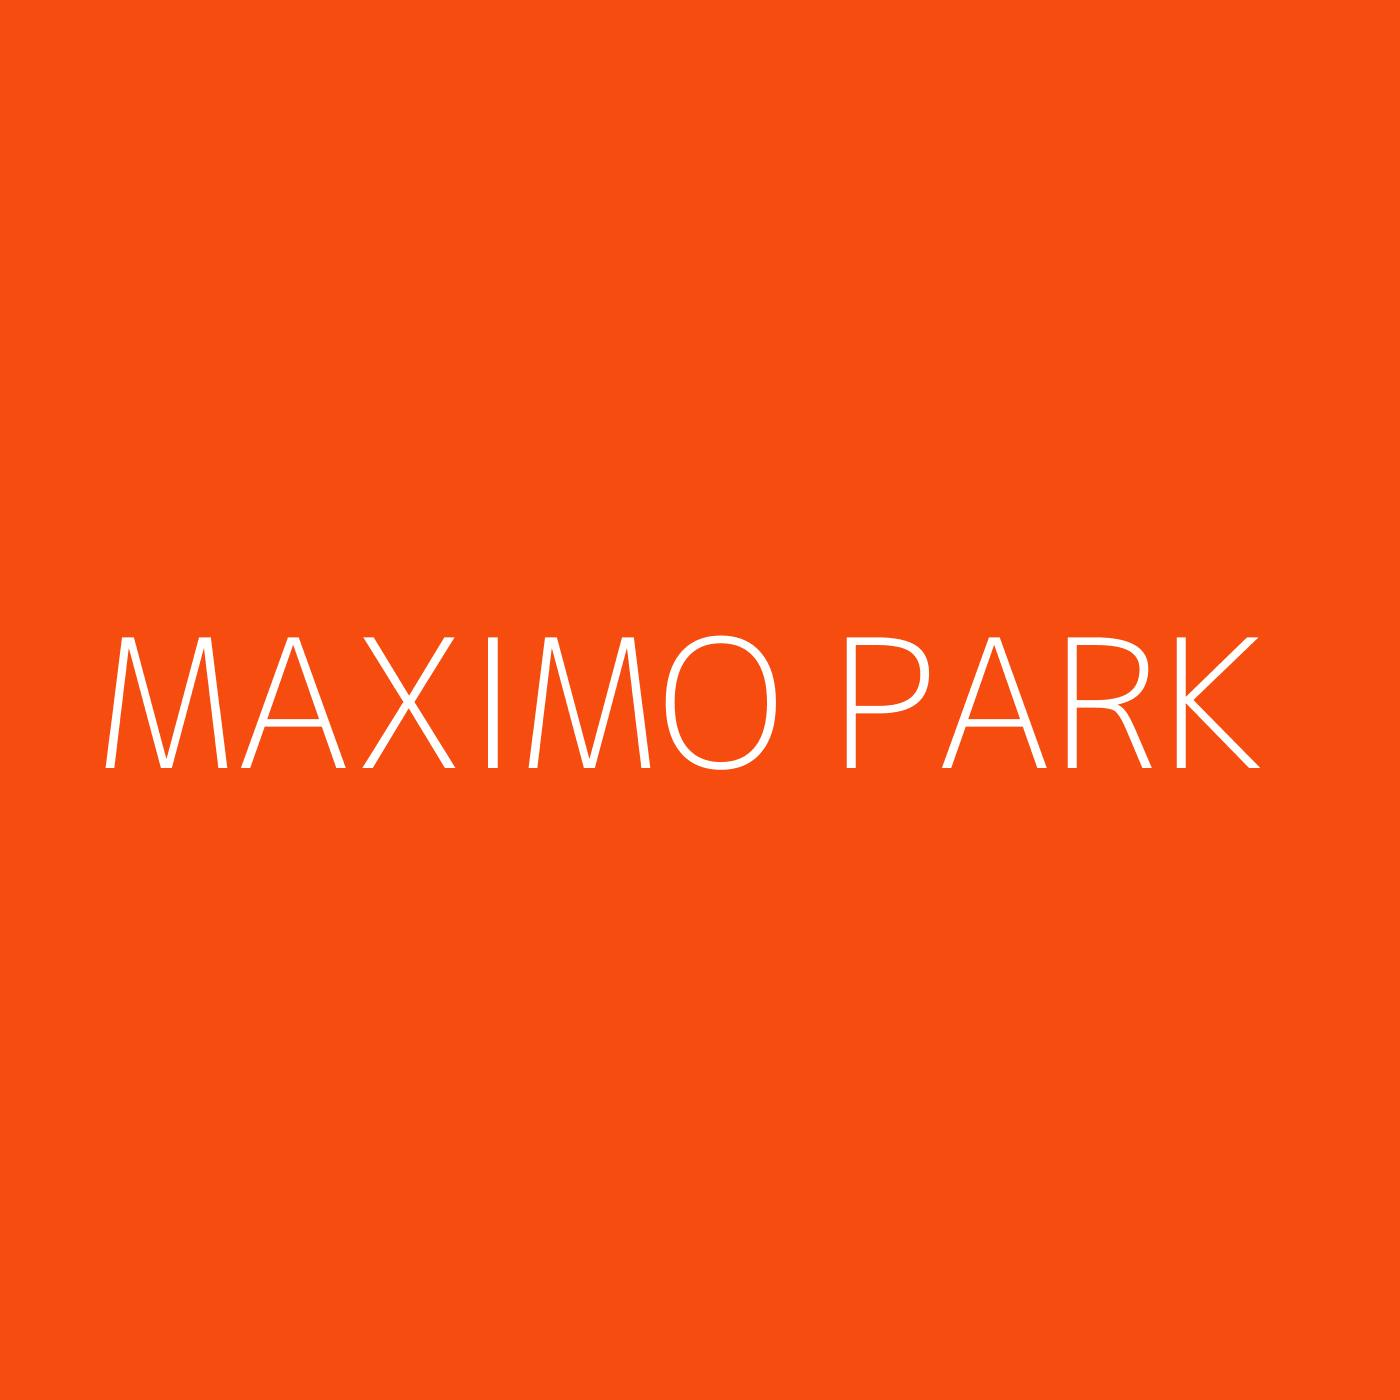 Maximo Park Playlist Artwork